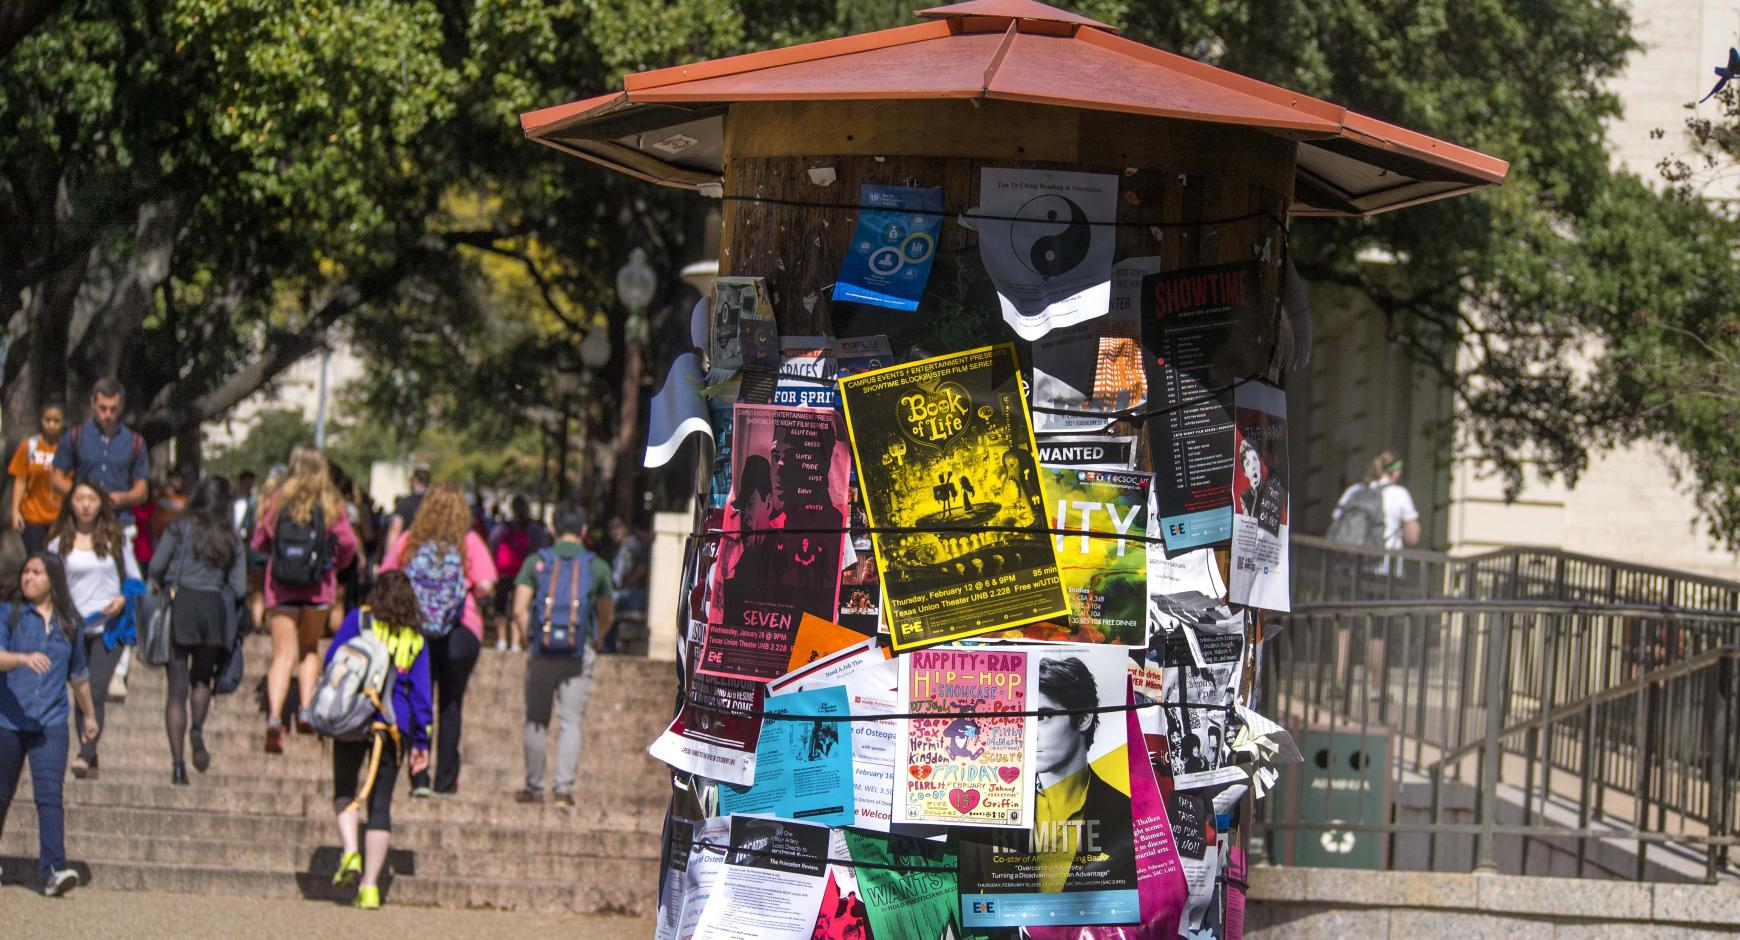 Kiosk with event flyers on the West Mall.